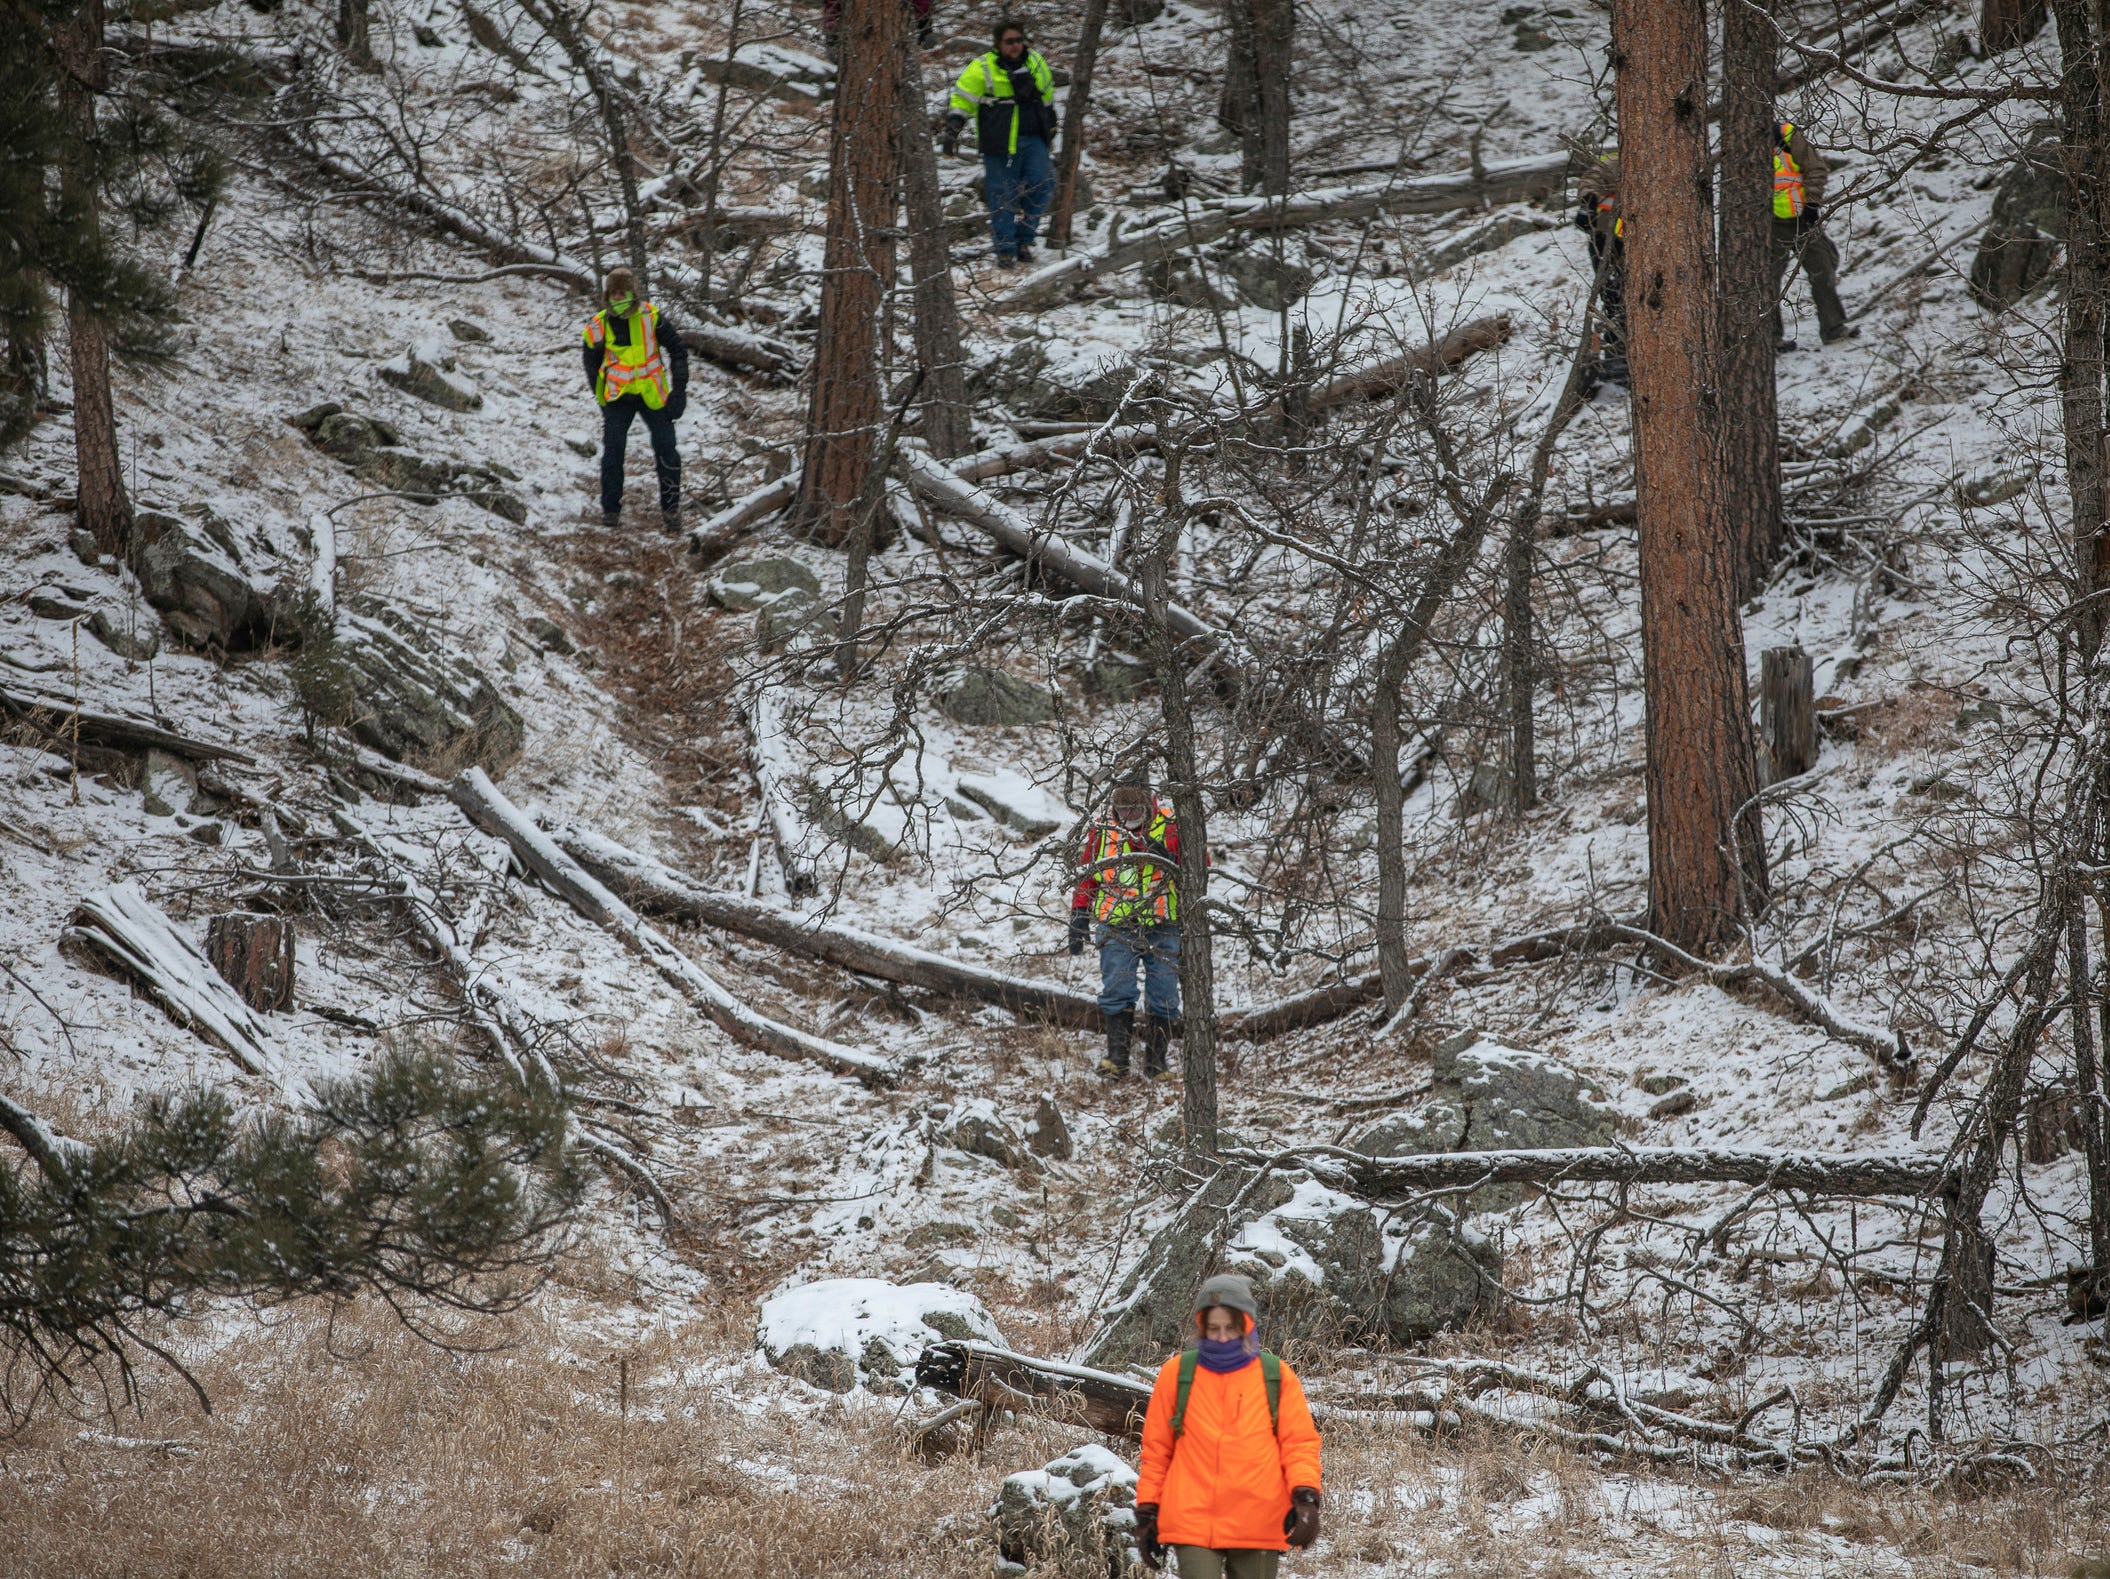 Searchers comb the area near the Black Hills Children's Home near Rockerville, S.D., on Tuesday, Feb. 5, 2019, while looking for Serenity Dennard, a 9-year-old girl who was last seen Sunday morning leaving the Children's Home. Officials are encouraging anyone living in the Rockerville, Foster Gulch and Highway 16 area to check their property. (Ryan Hermens/Rapid City Journal via AP)